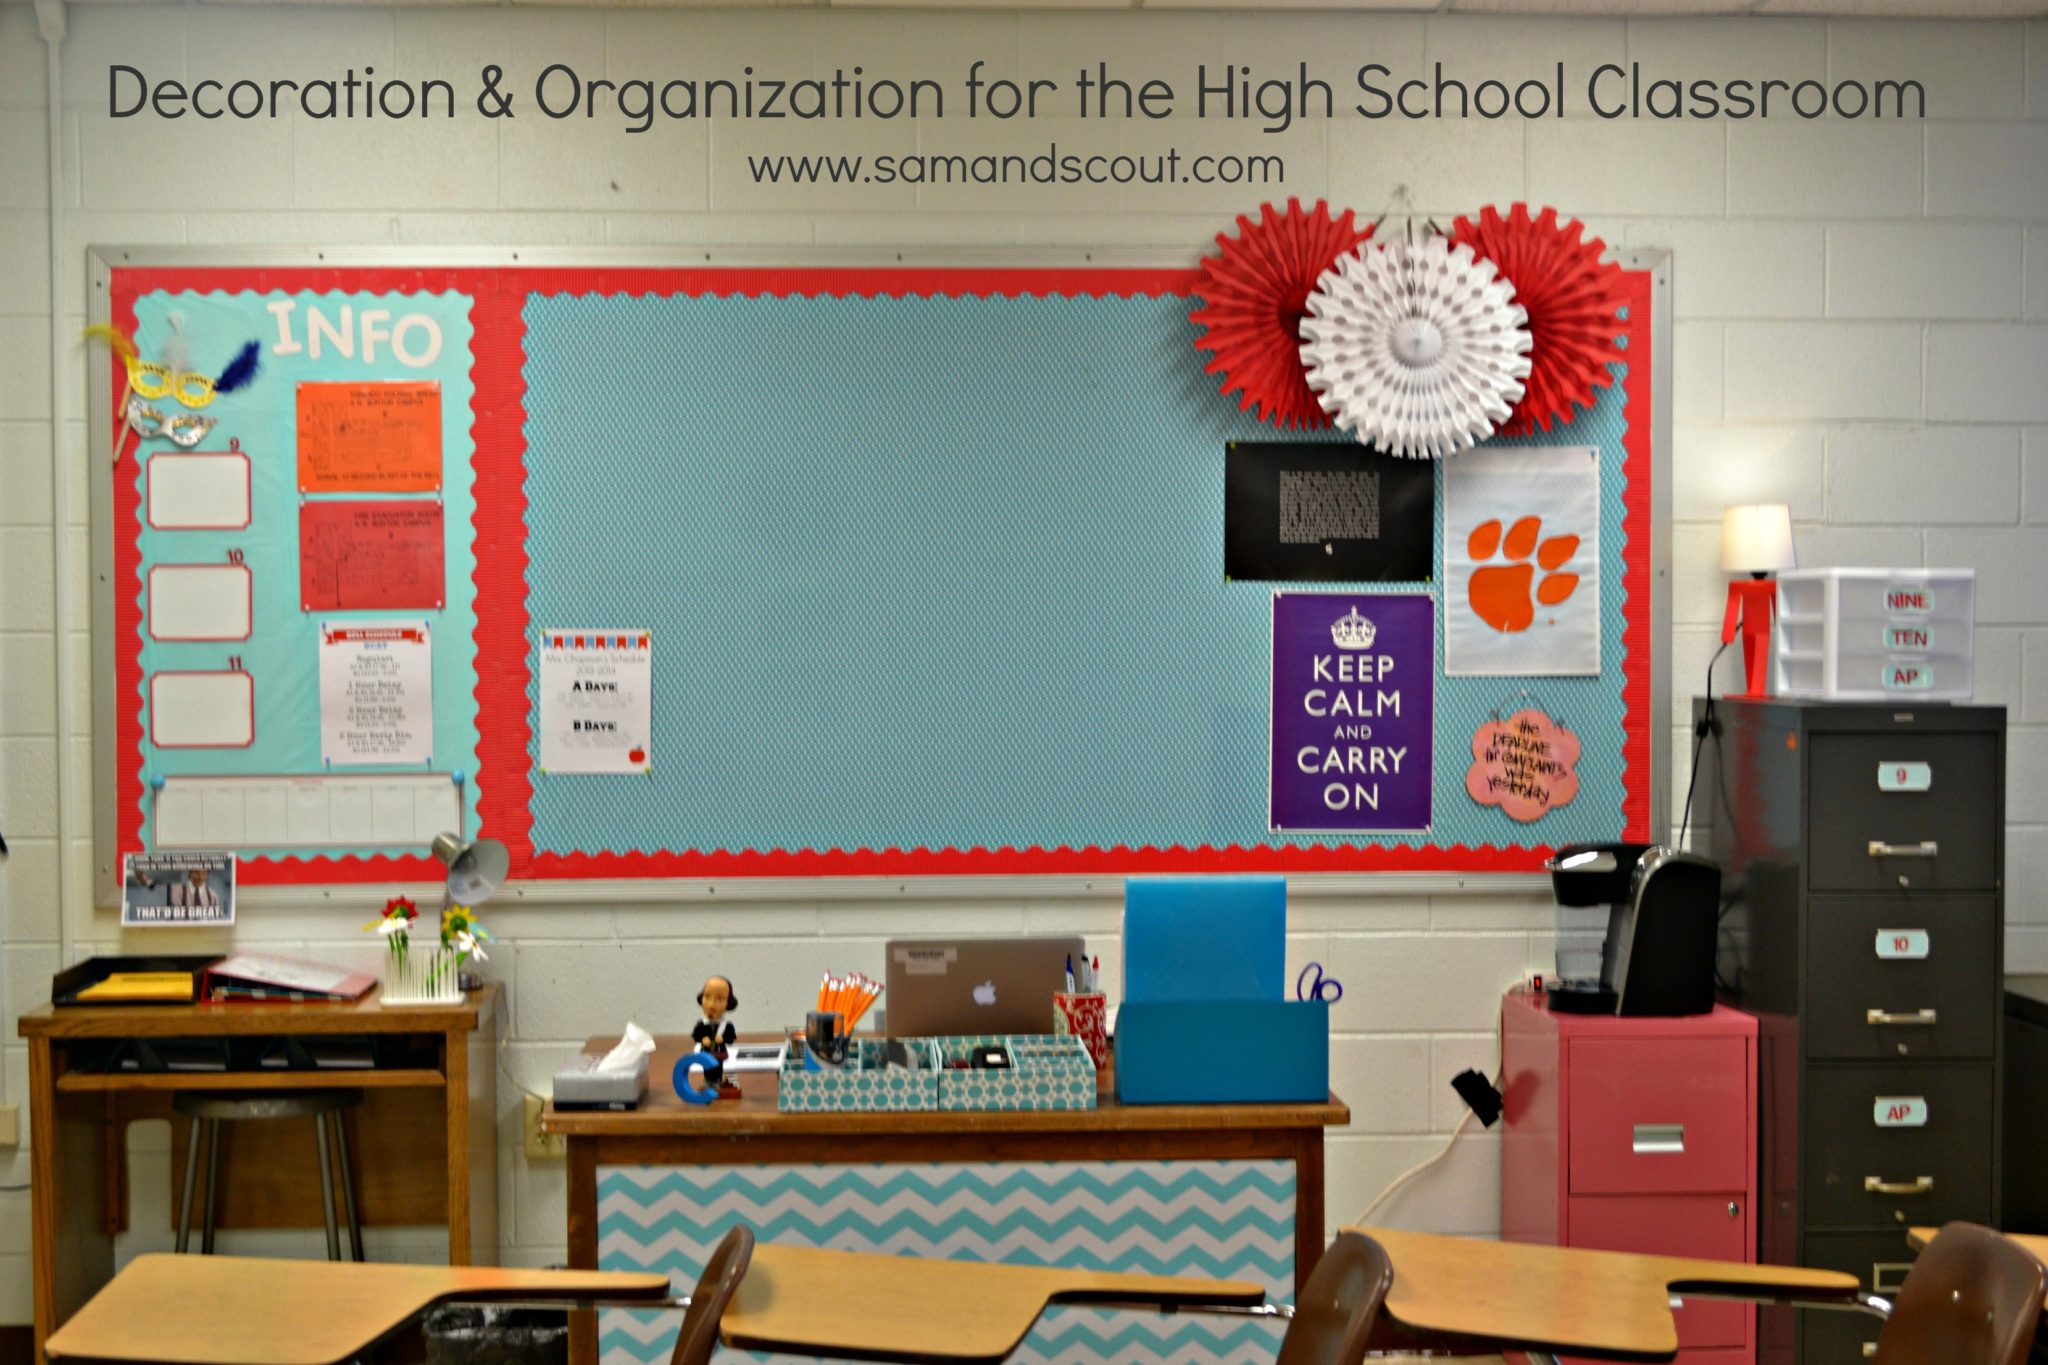 Classroom Design For High School ~ Decoration organization for the high school classroom